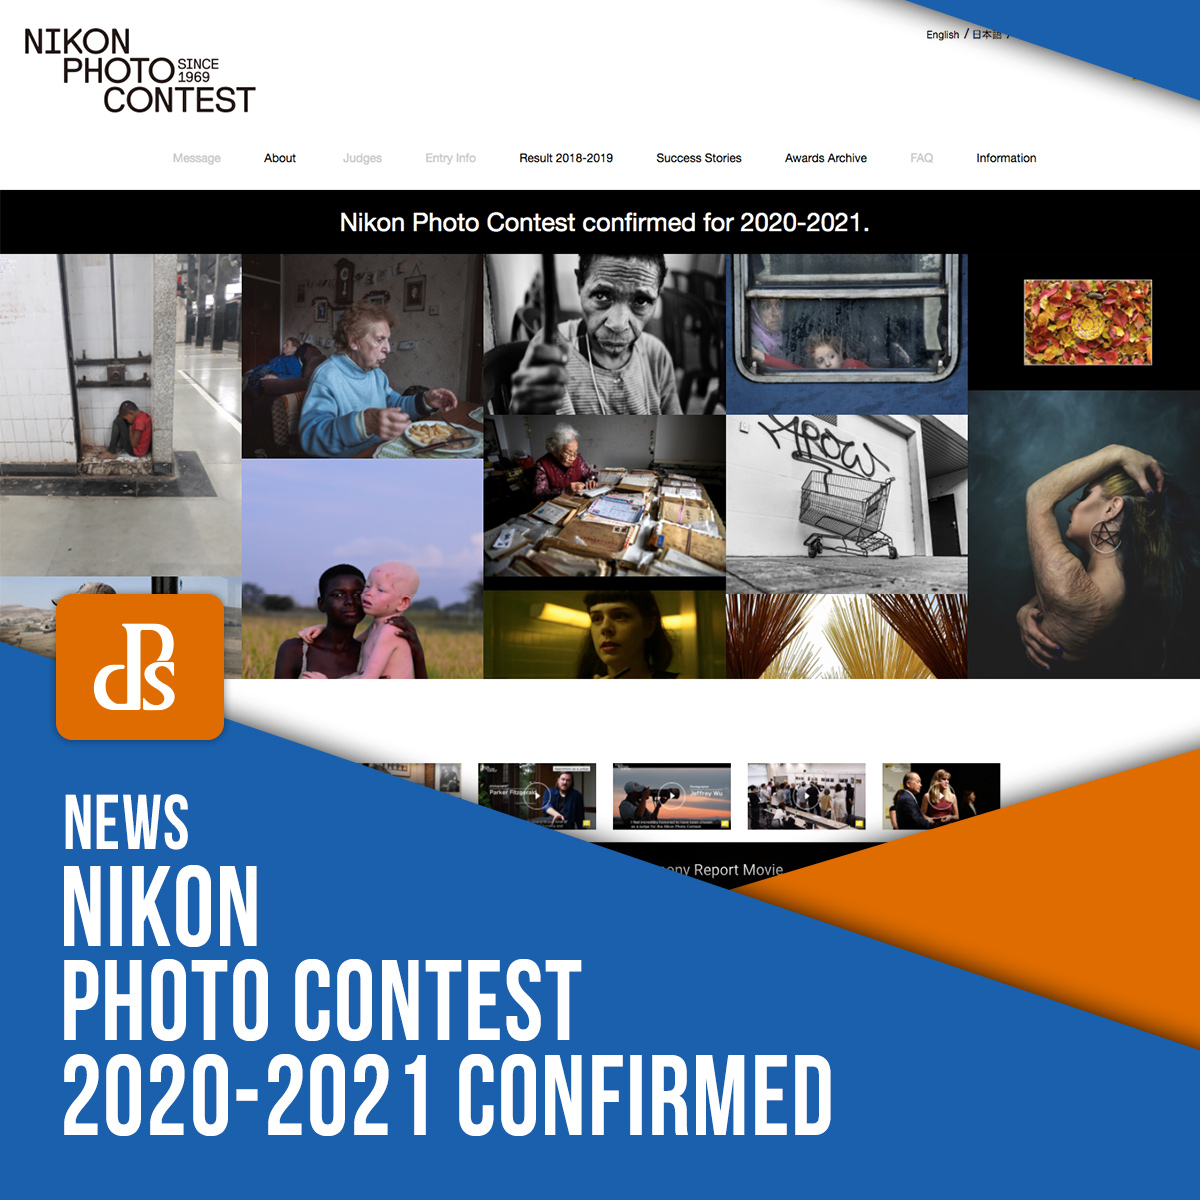 dps-news-nikon-photo-contest-2020-confirmed